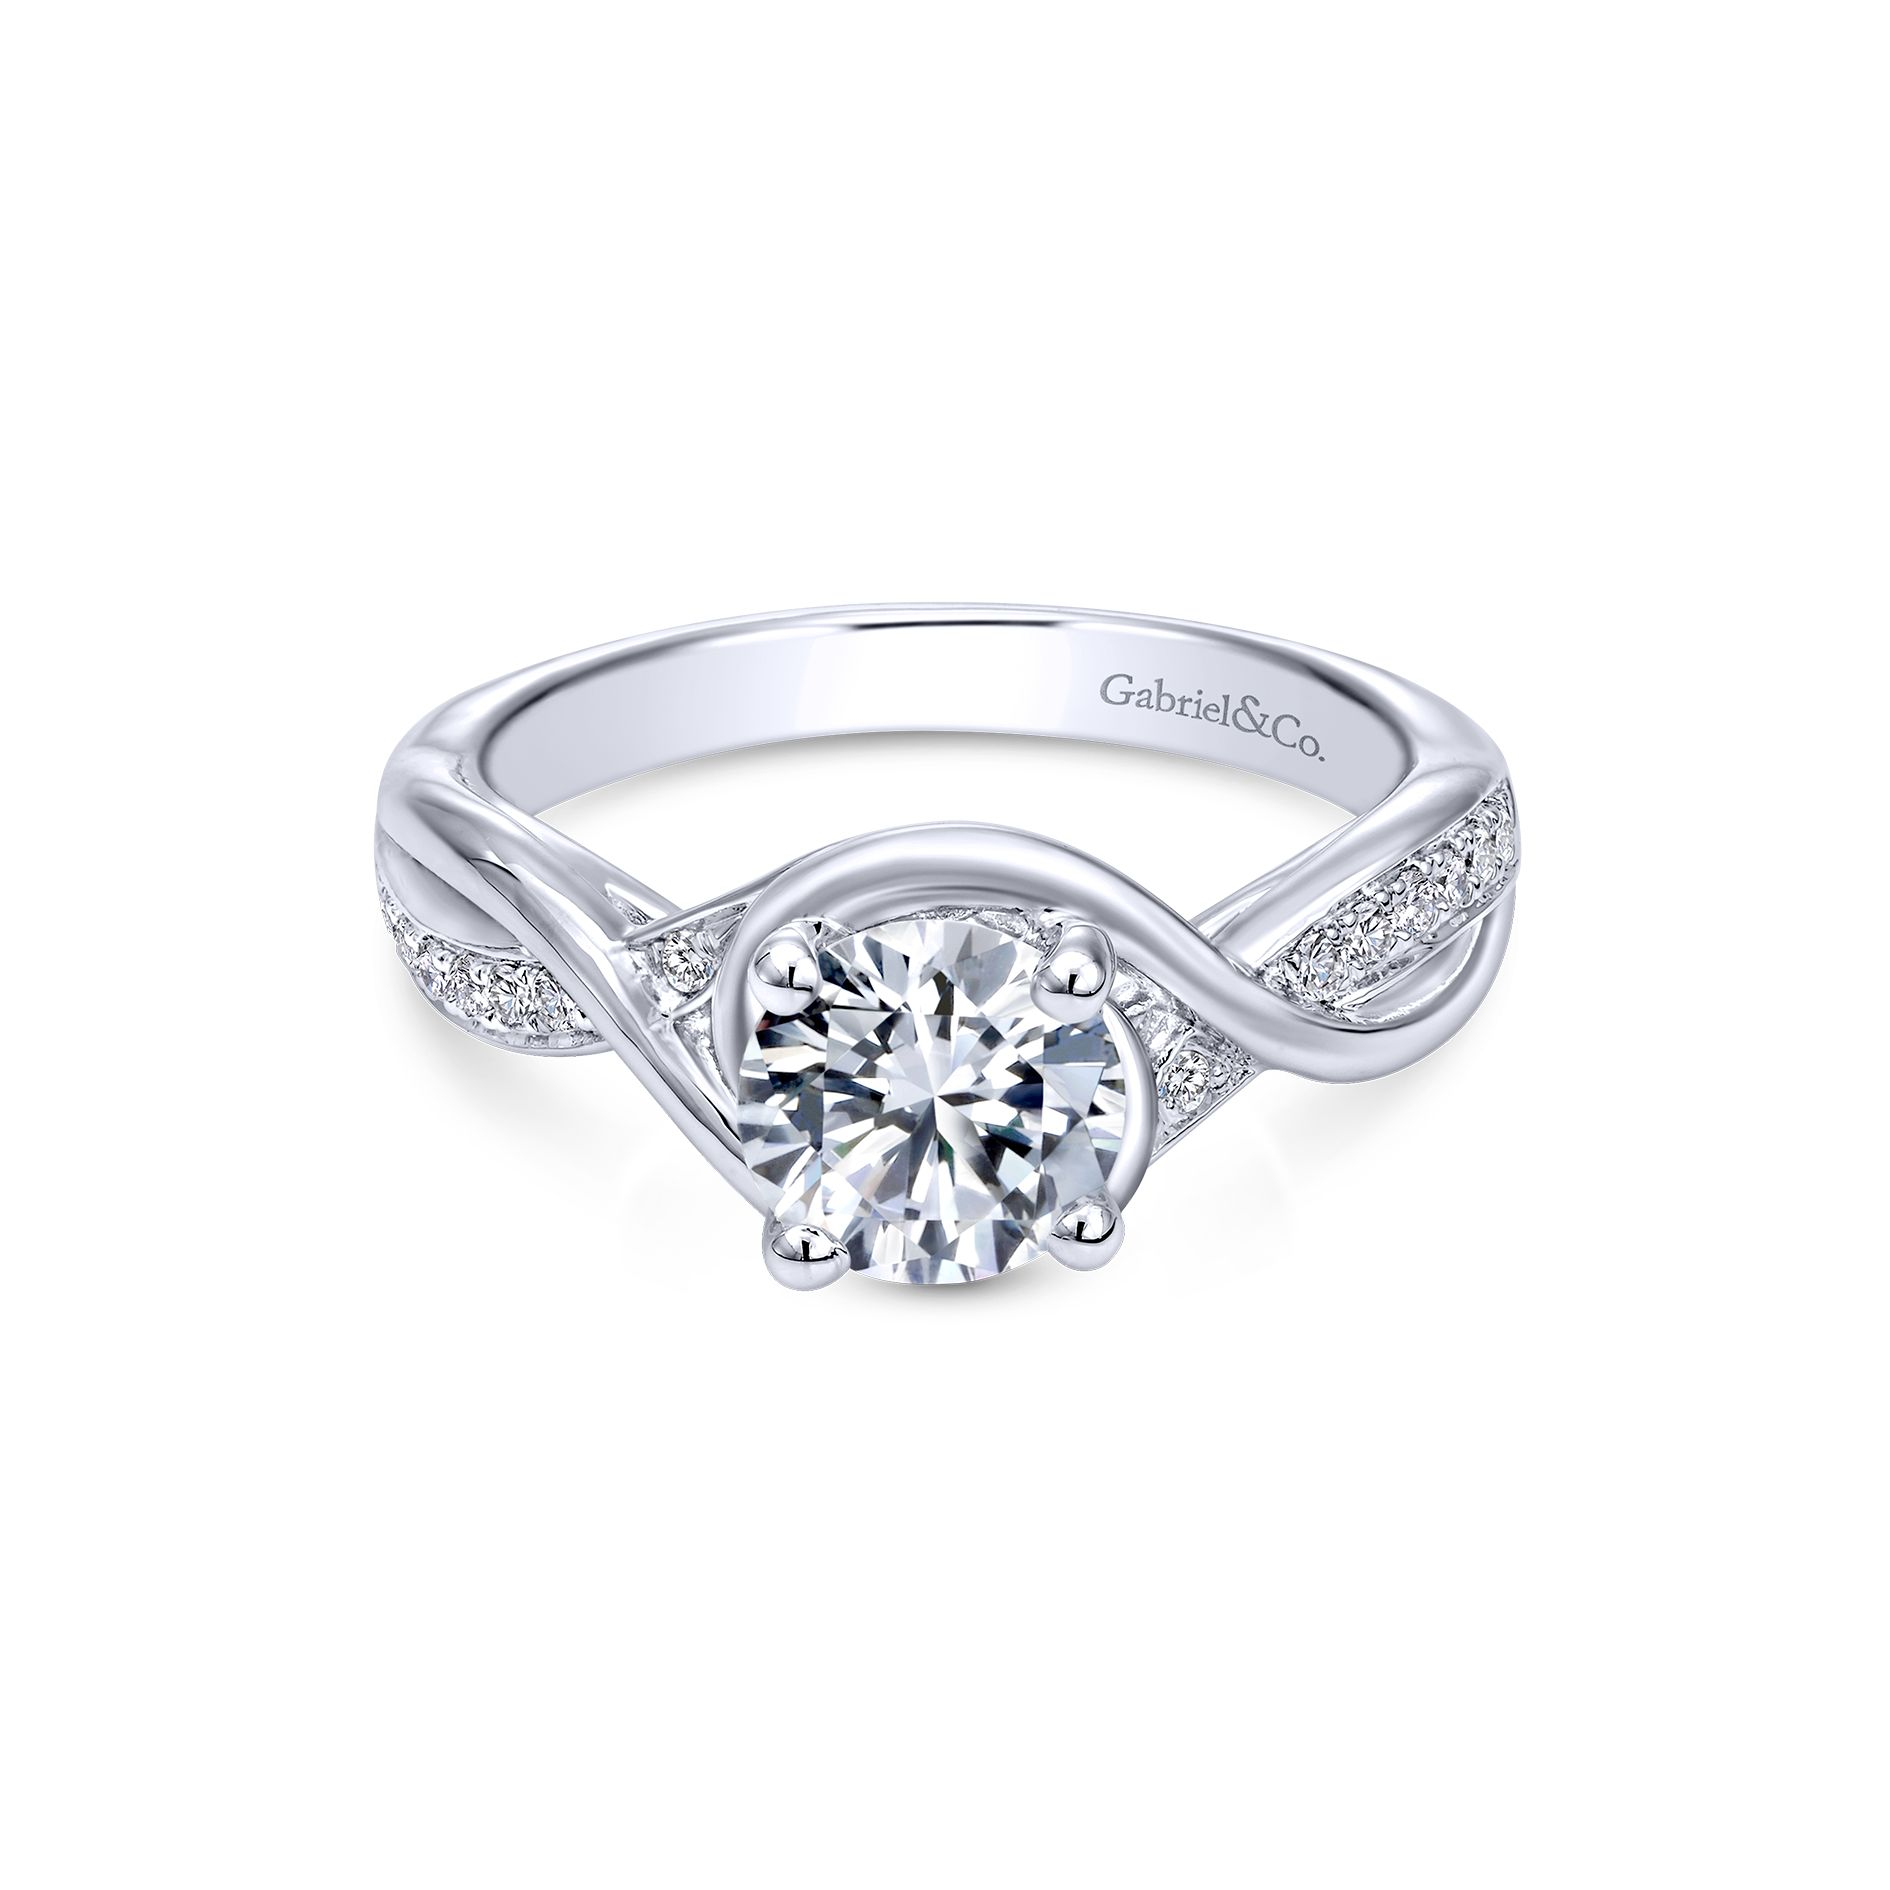 Engagement Rings - WHITE GOLD ROUND TWISTED DIAMOND ENGAGEMENT RING